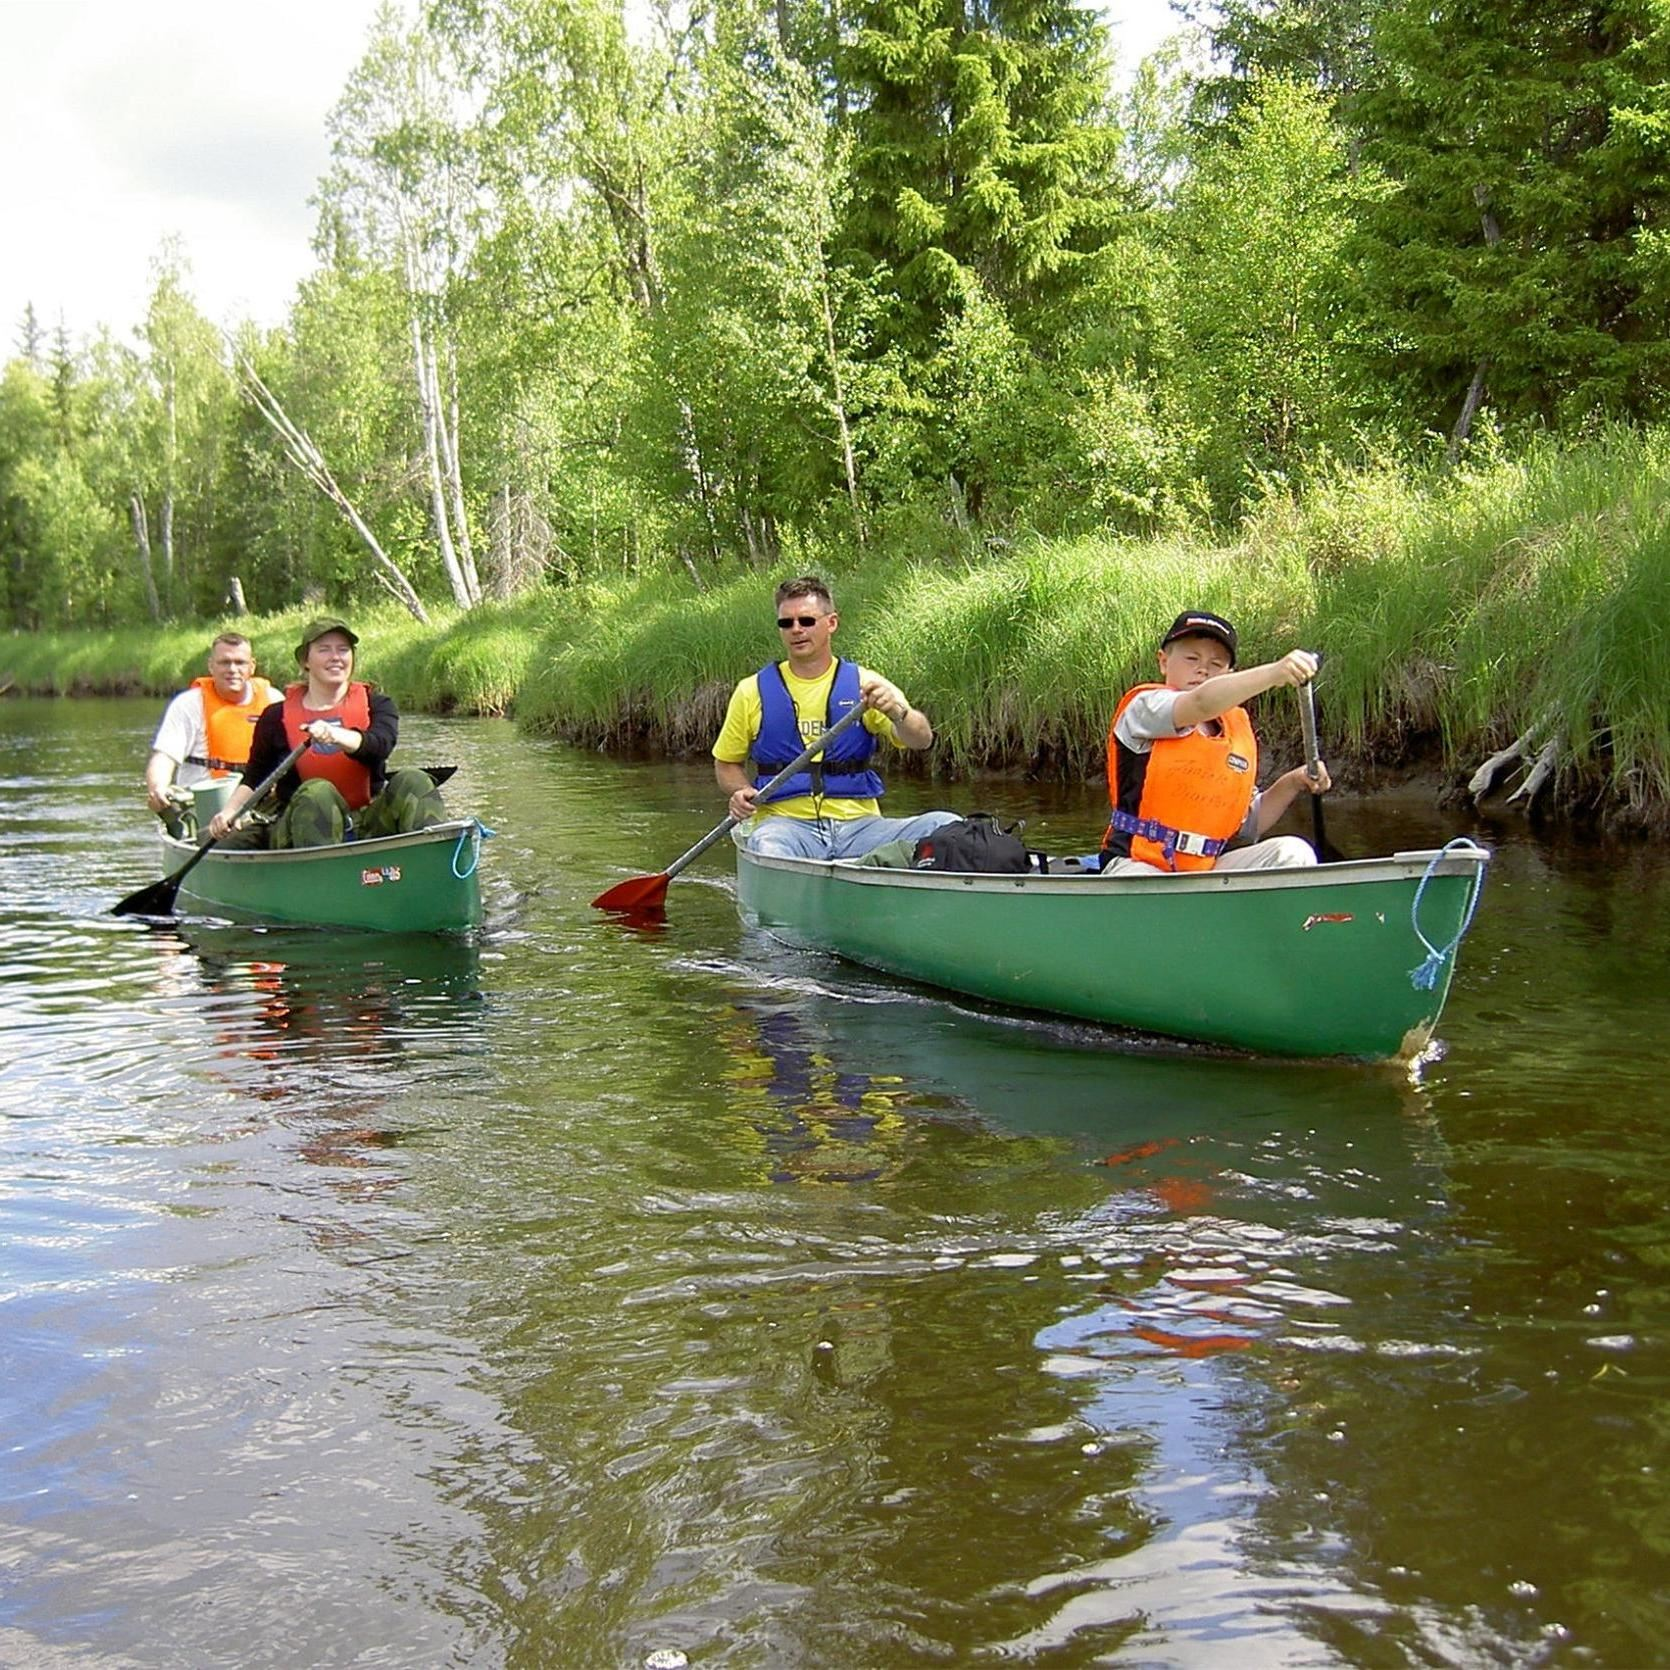 Canoeing in Junsele